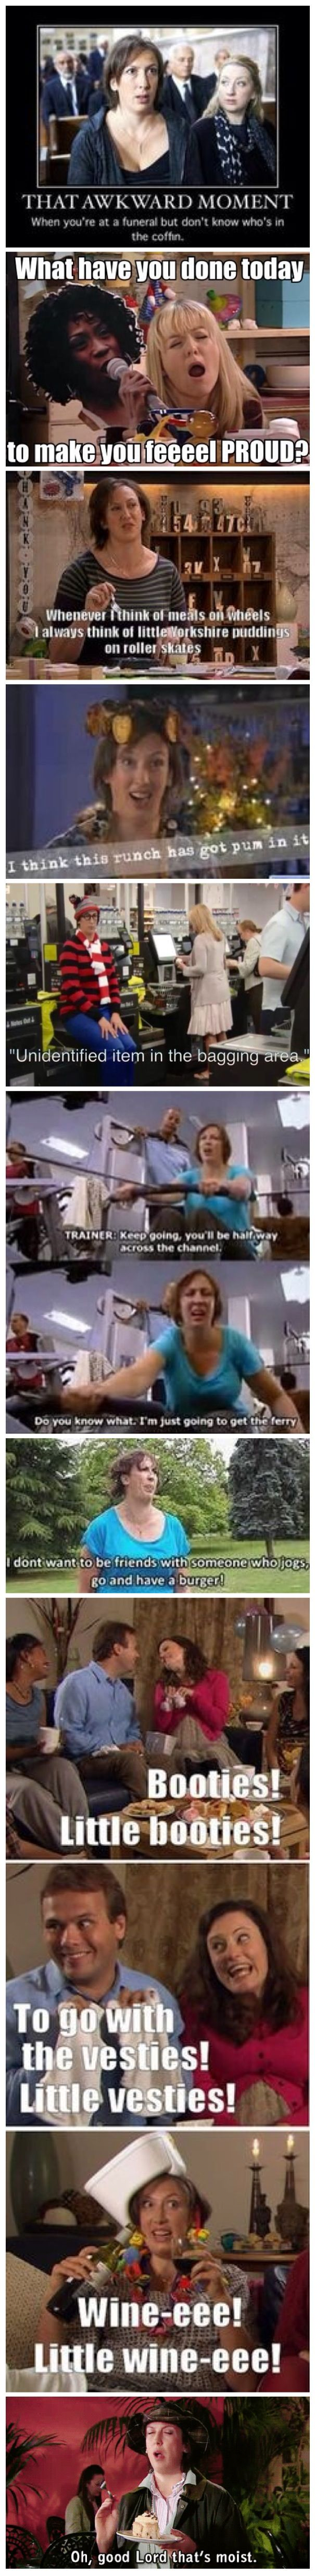 Some of Miranda's best bits.